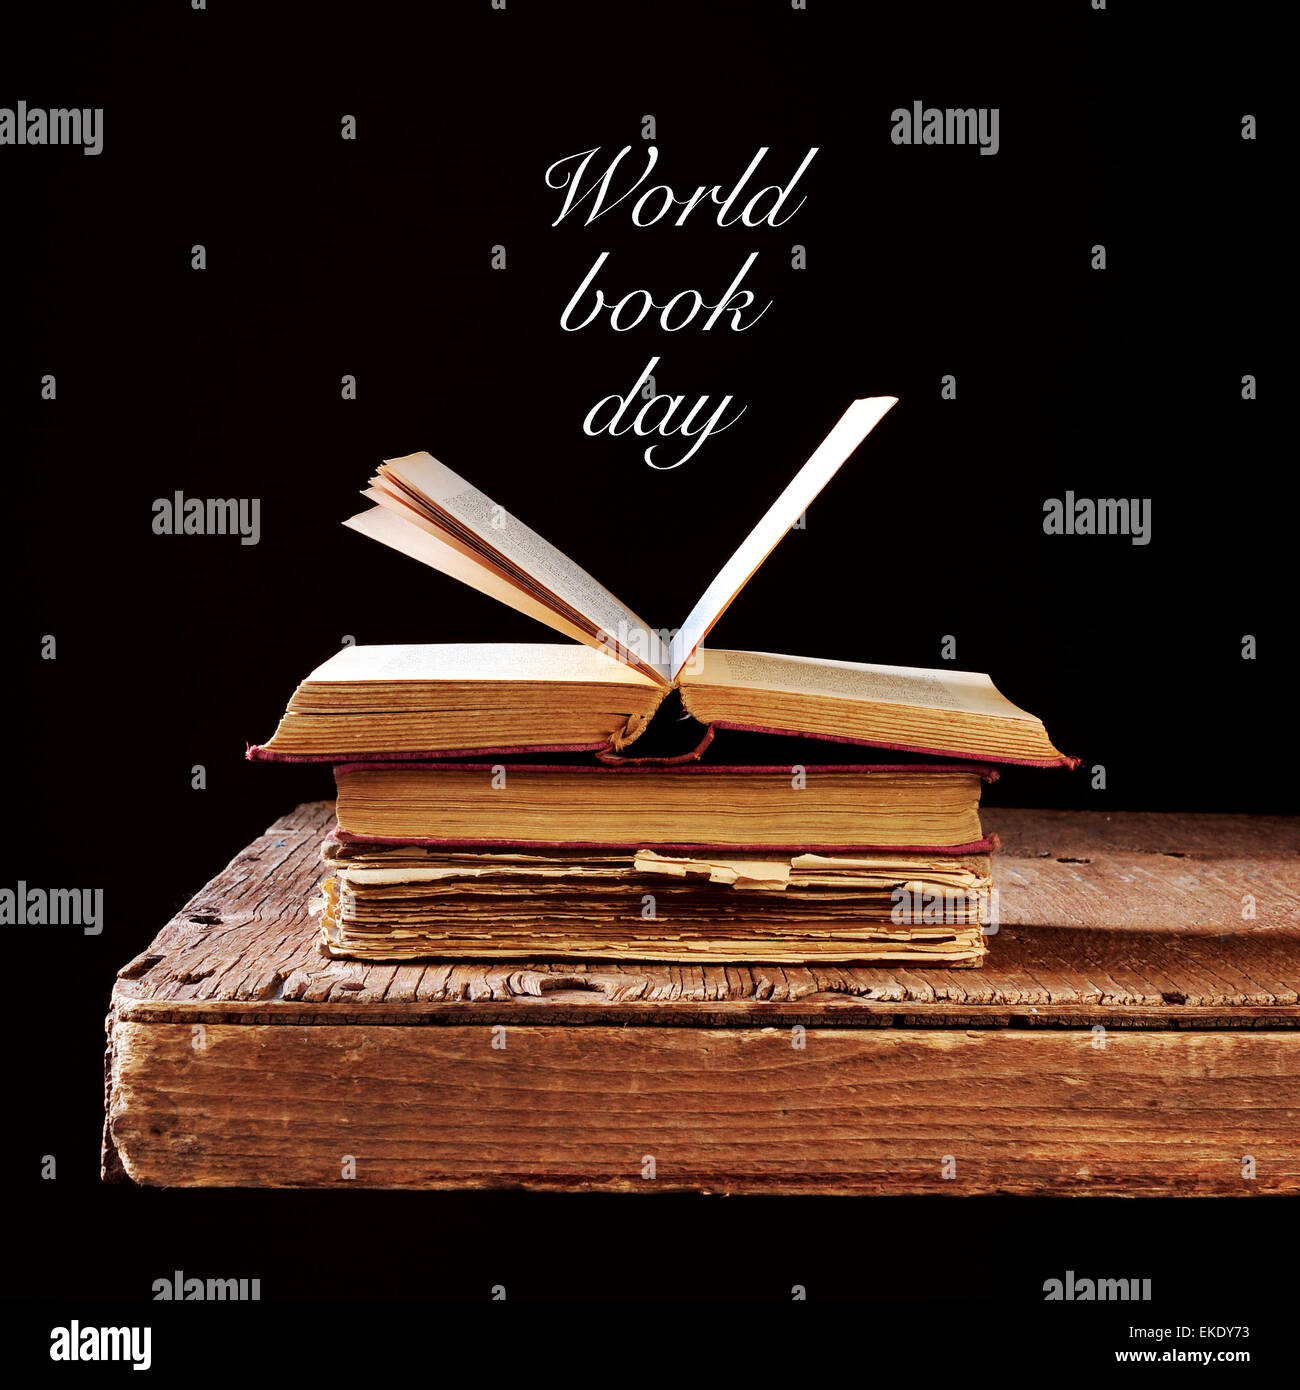 some old books on a rustic wooden table and the text world book day written in white on a black background - Stock Image